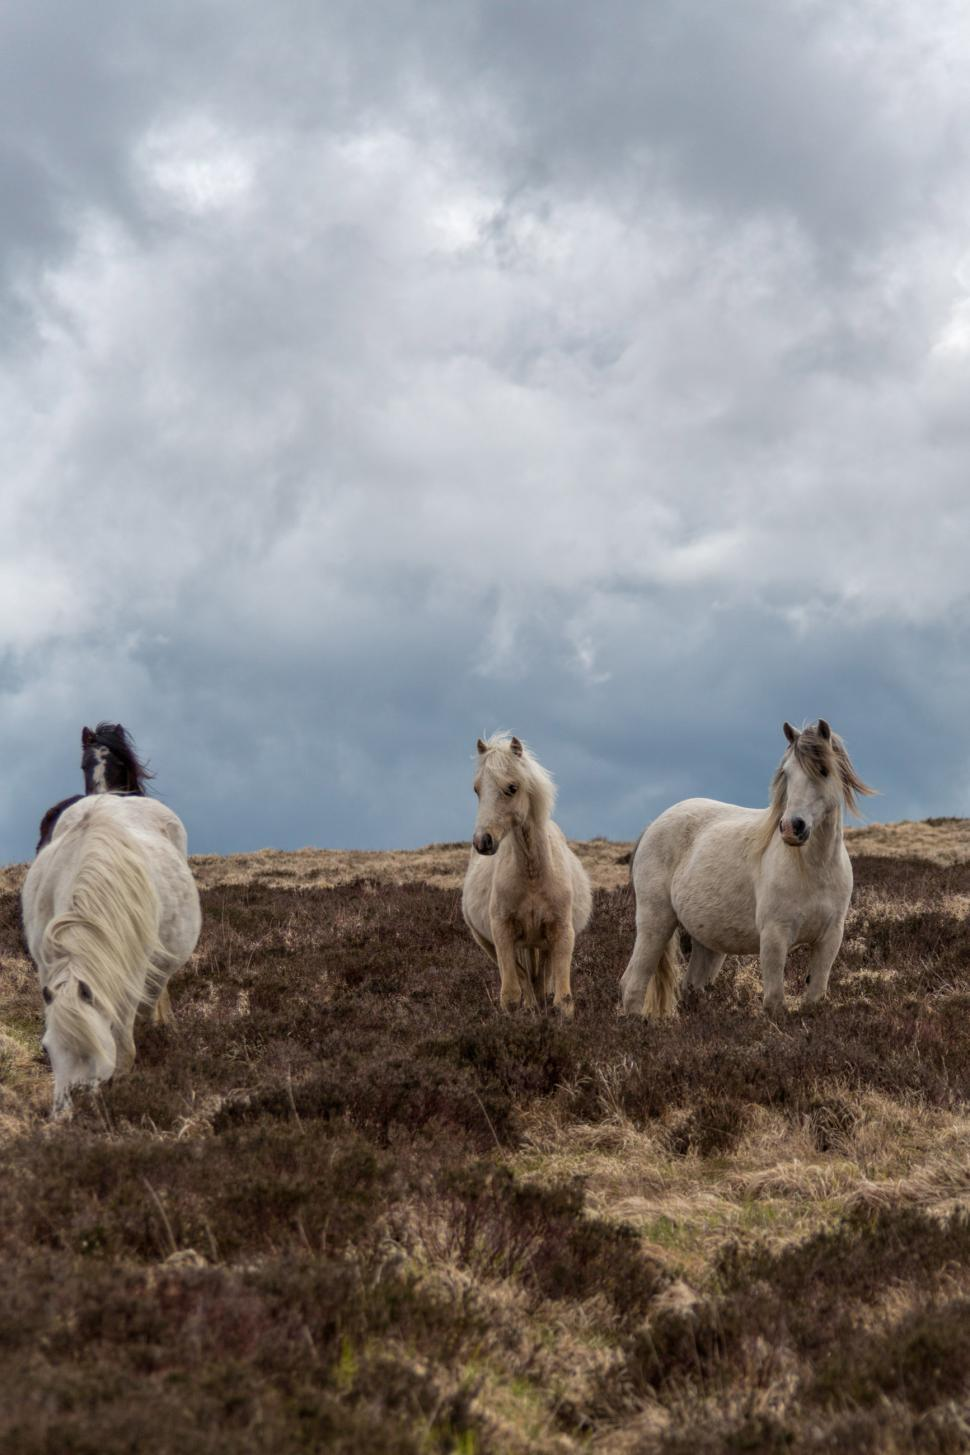 Download Free Stock HD Photo of Horses in field Online